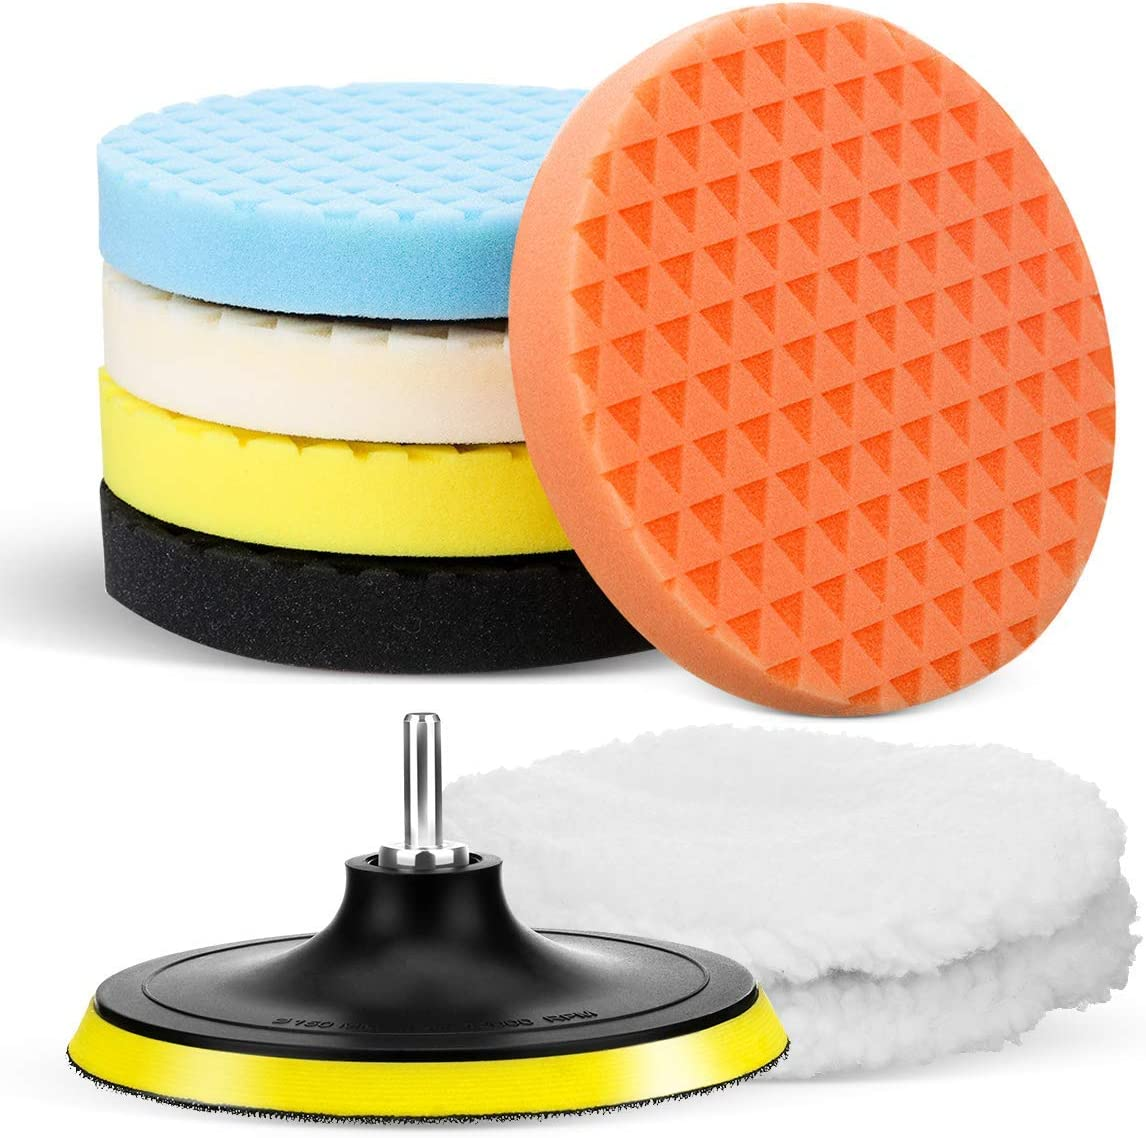 MATCC Drill Polishing Pads Kit 6 Inch Buffing Pads with Wool Bonnet Pads M14 Drill Adapter Waxing Buffing Pads Kit for Car Polisher Household Electric Drill for Matching Velcro Backing Pad 8Pcs